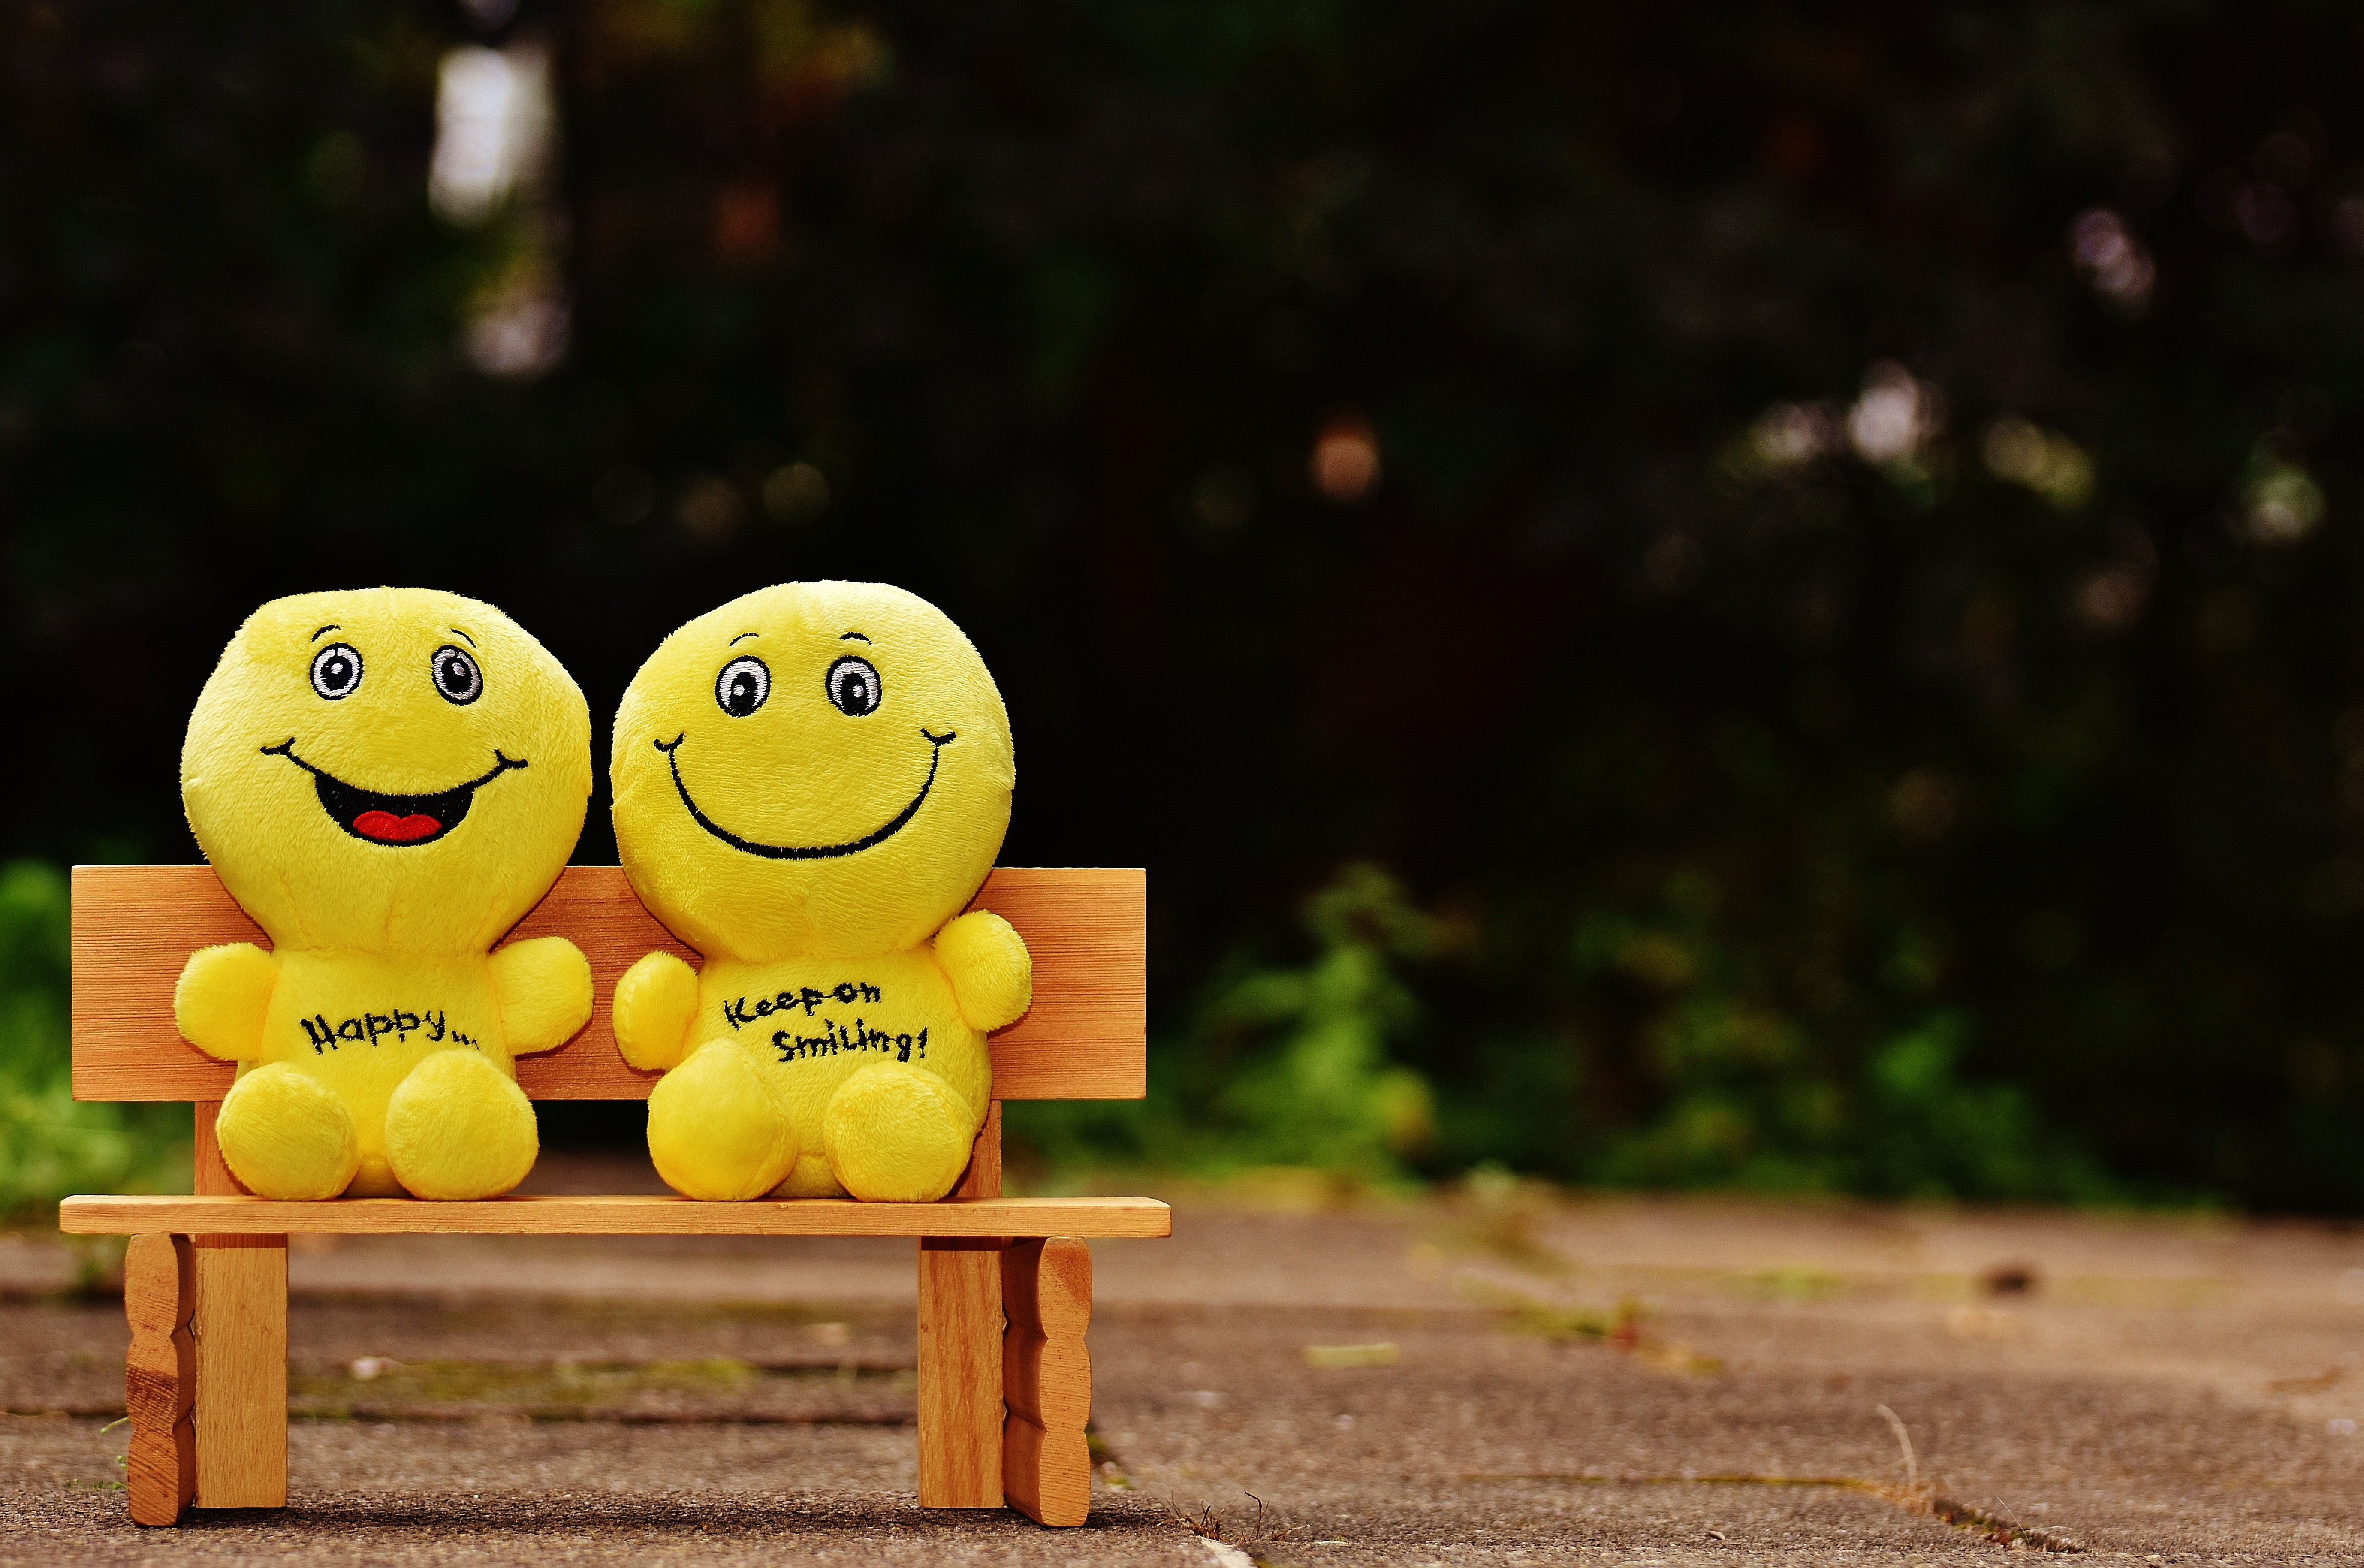 145556 download wallpaper Miscellanea, Miscellaneous, Emoticons, Smileys, Happy, Cheery, Smile, Bench, Cute screensavers and pictures for free